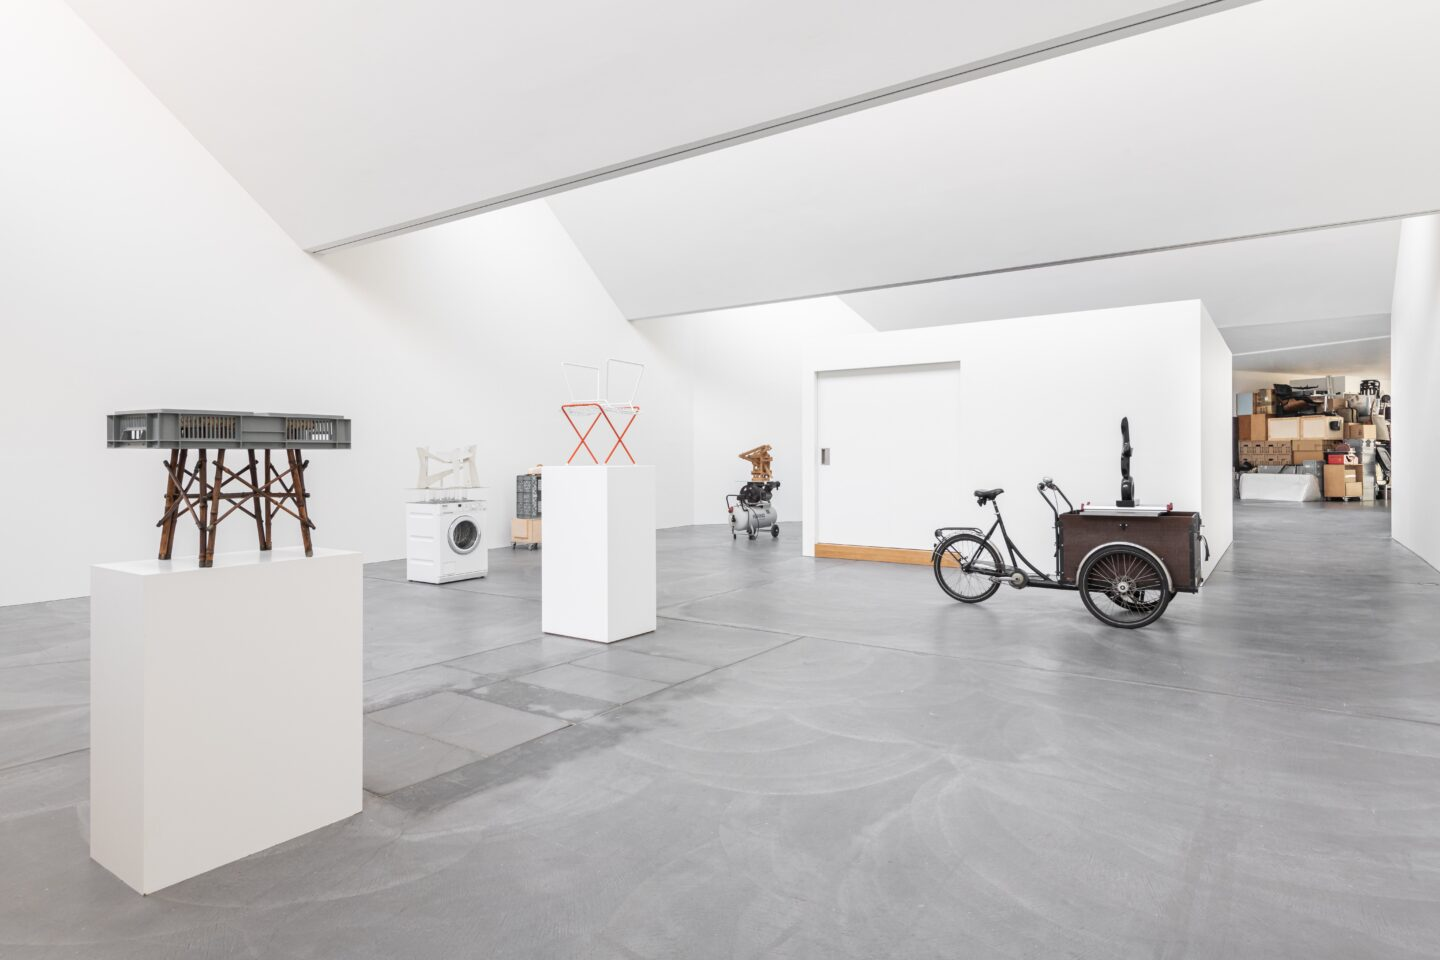 Exhibition View Florian Slotawa Soloshow «Customized Logistics» at von Bartha, Basel, 2020 / Photo: Ben Koechlin / Courtesy: the artist and von Bartha